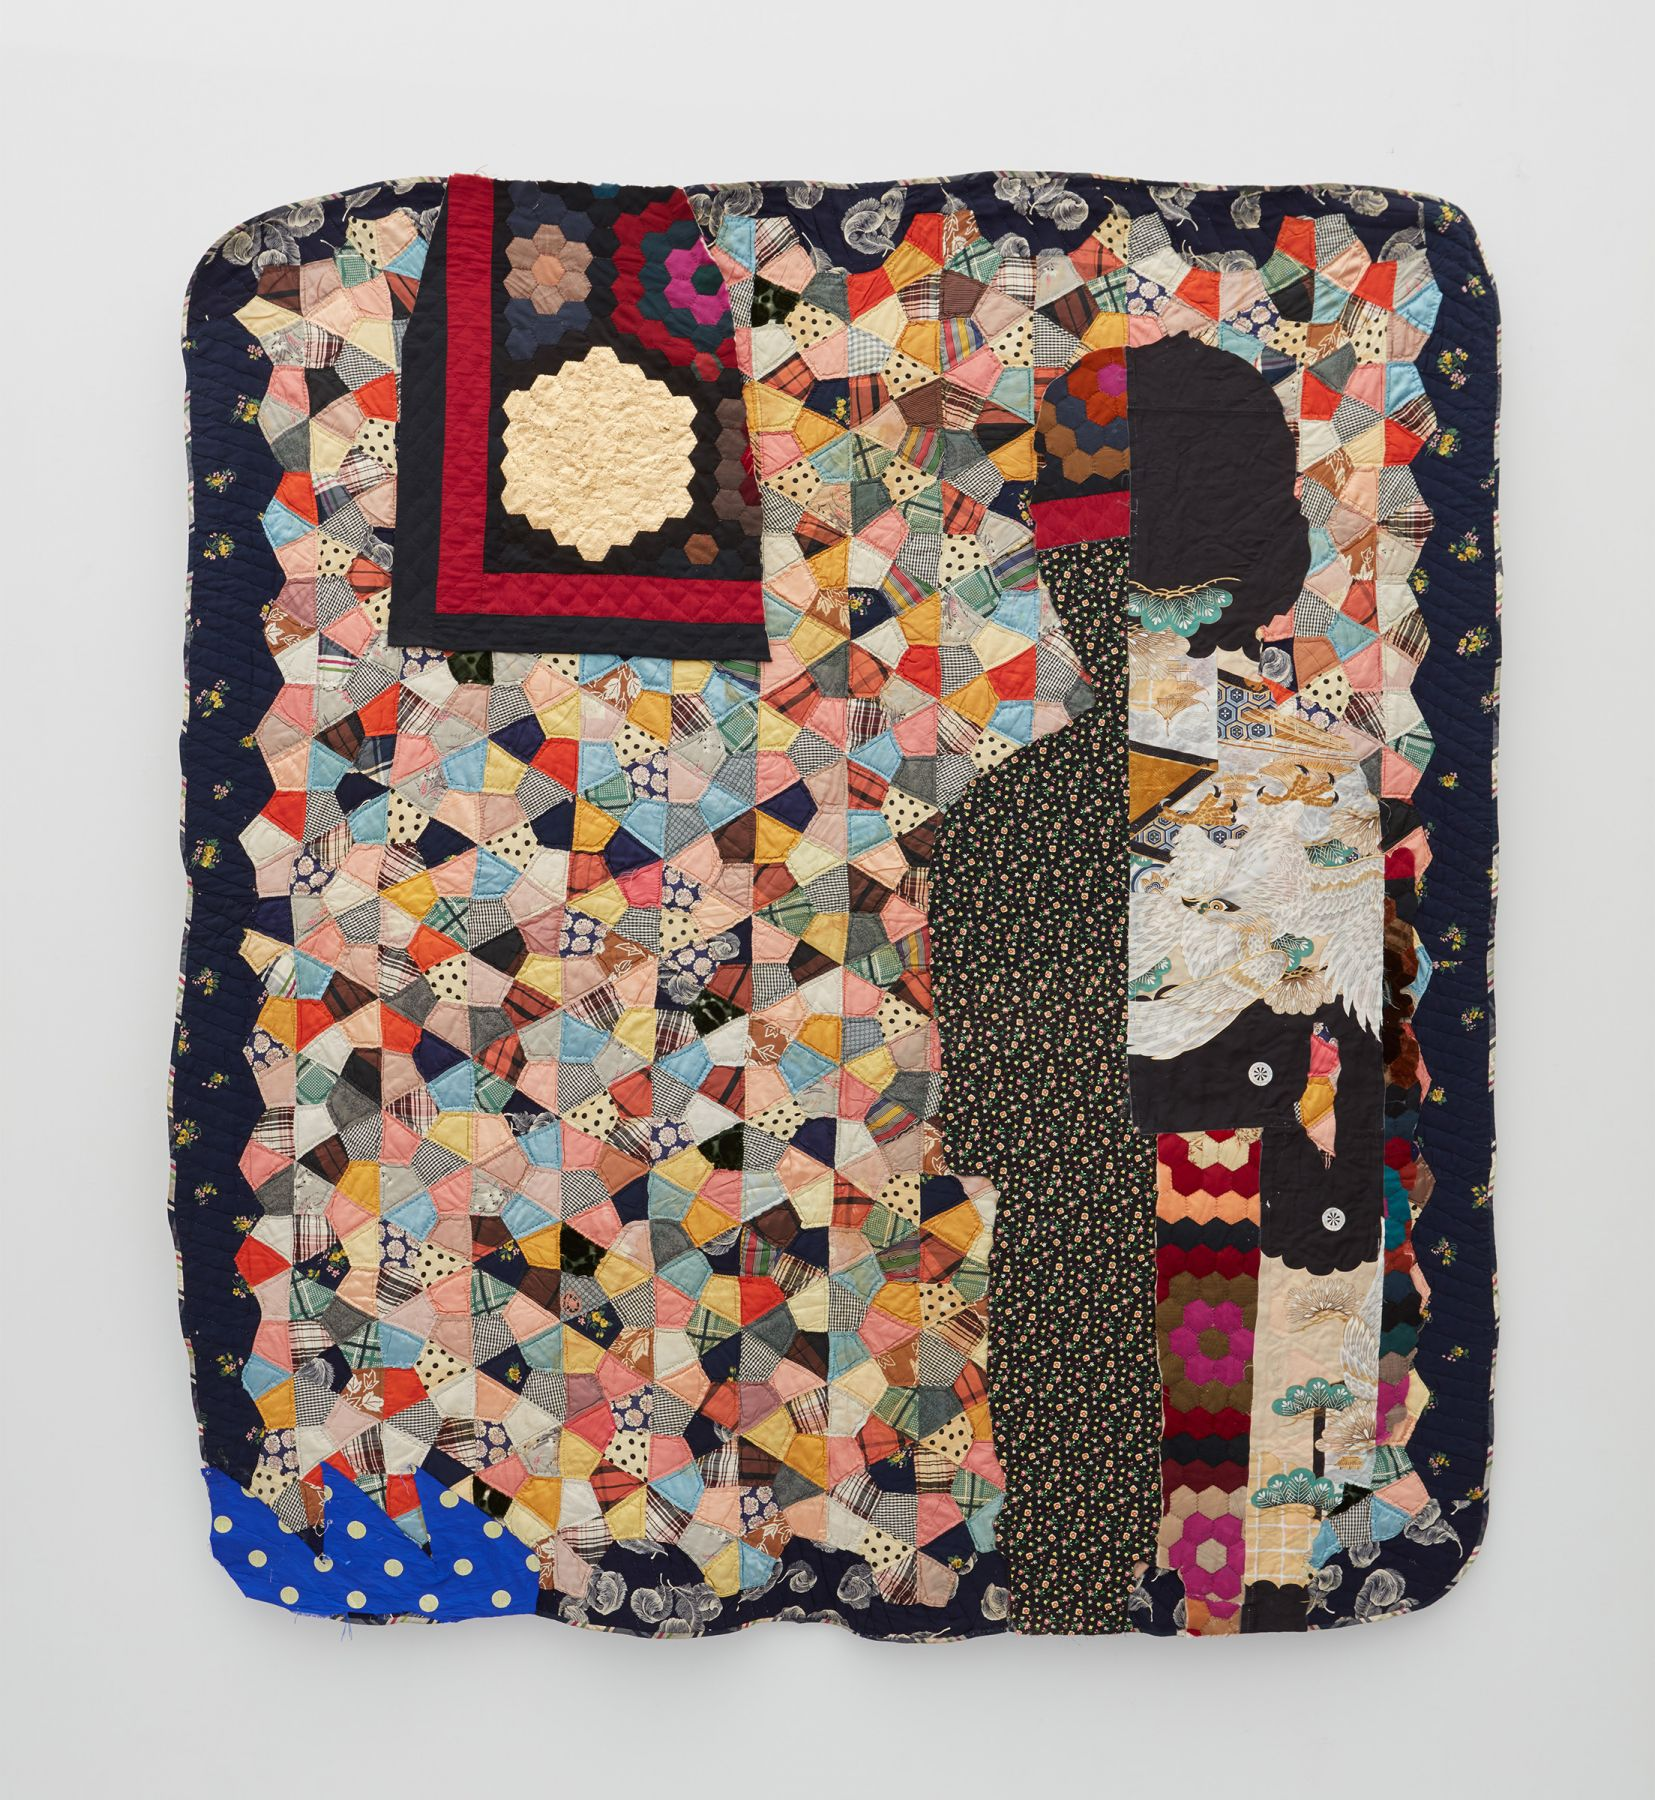 a contemporary quilt made out of antique quilt fragments by Sanford Biggers